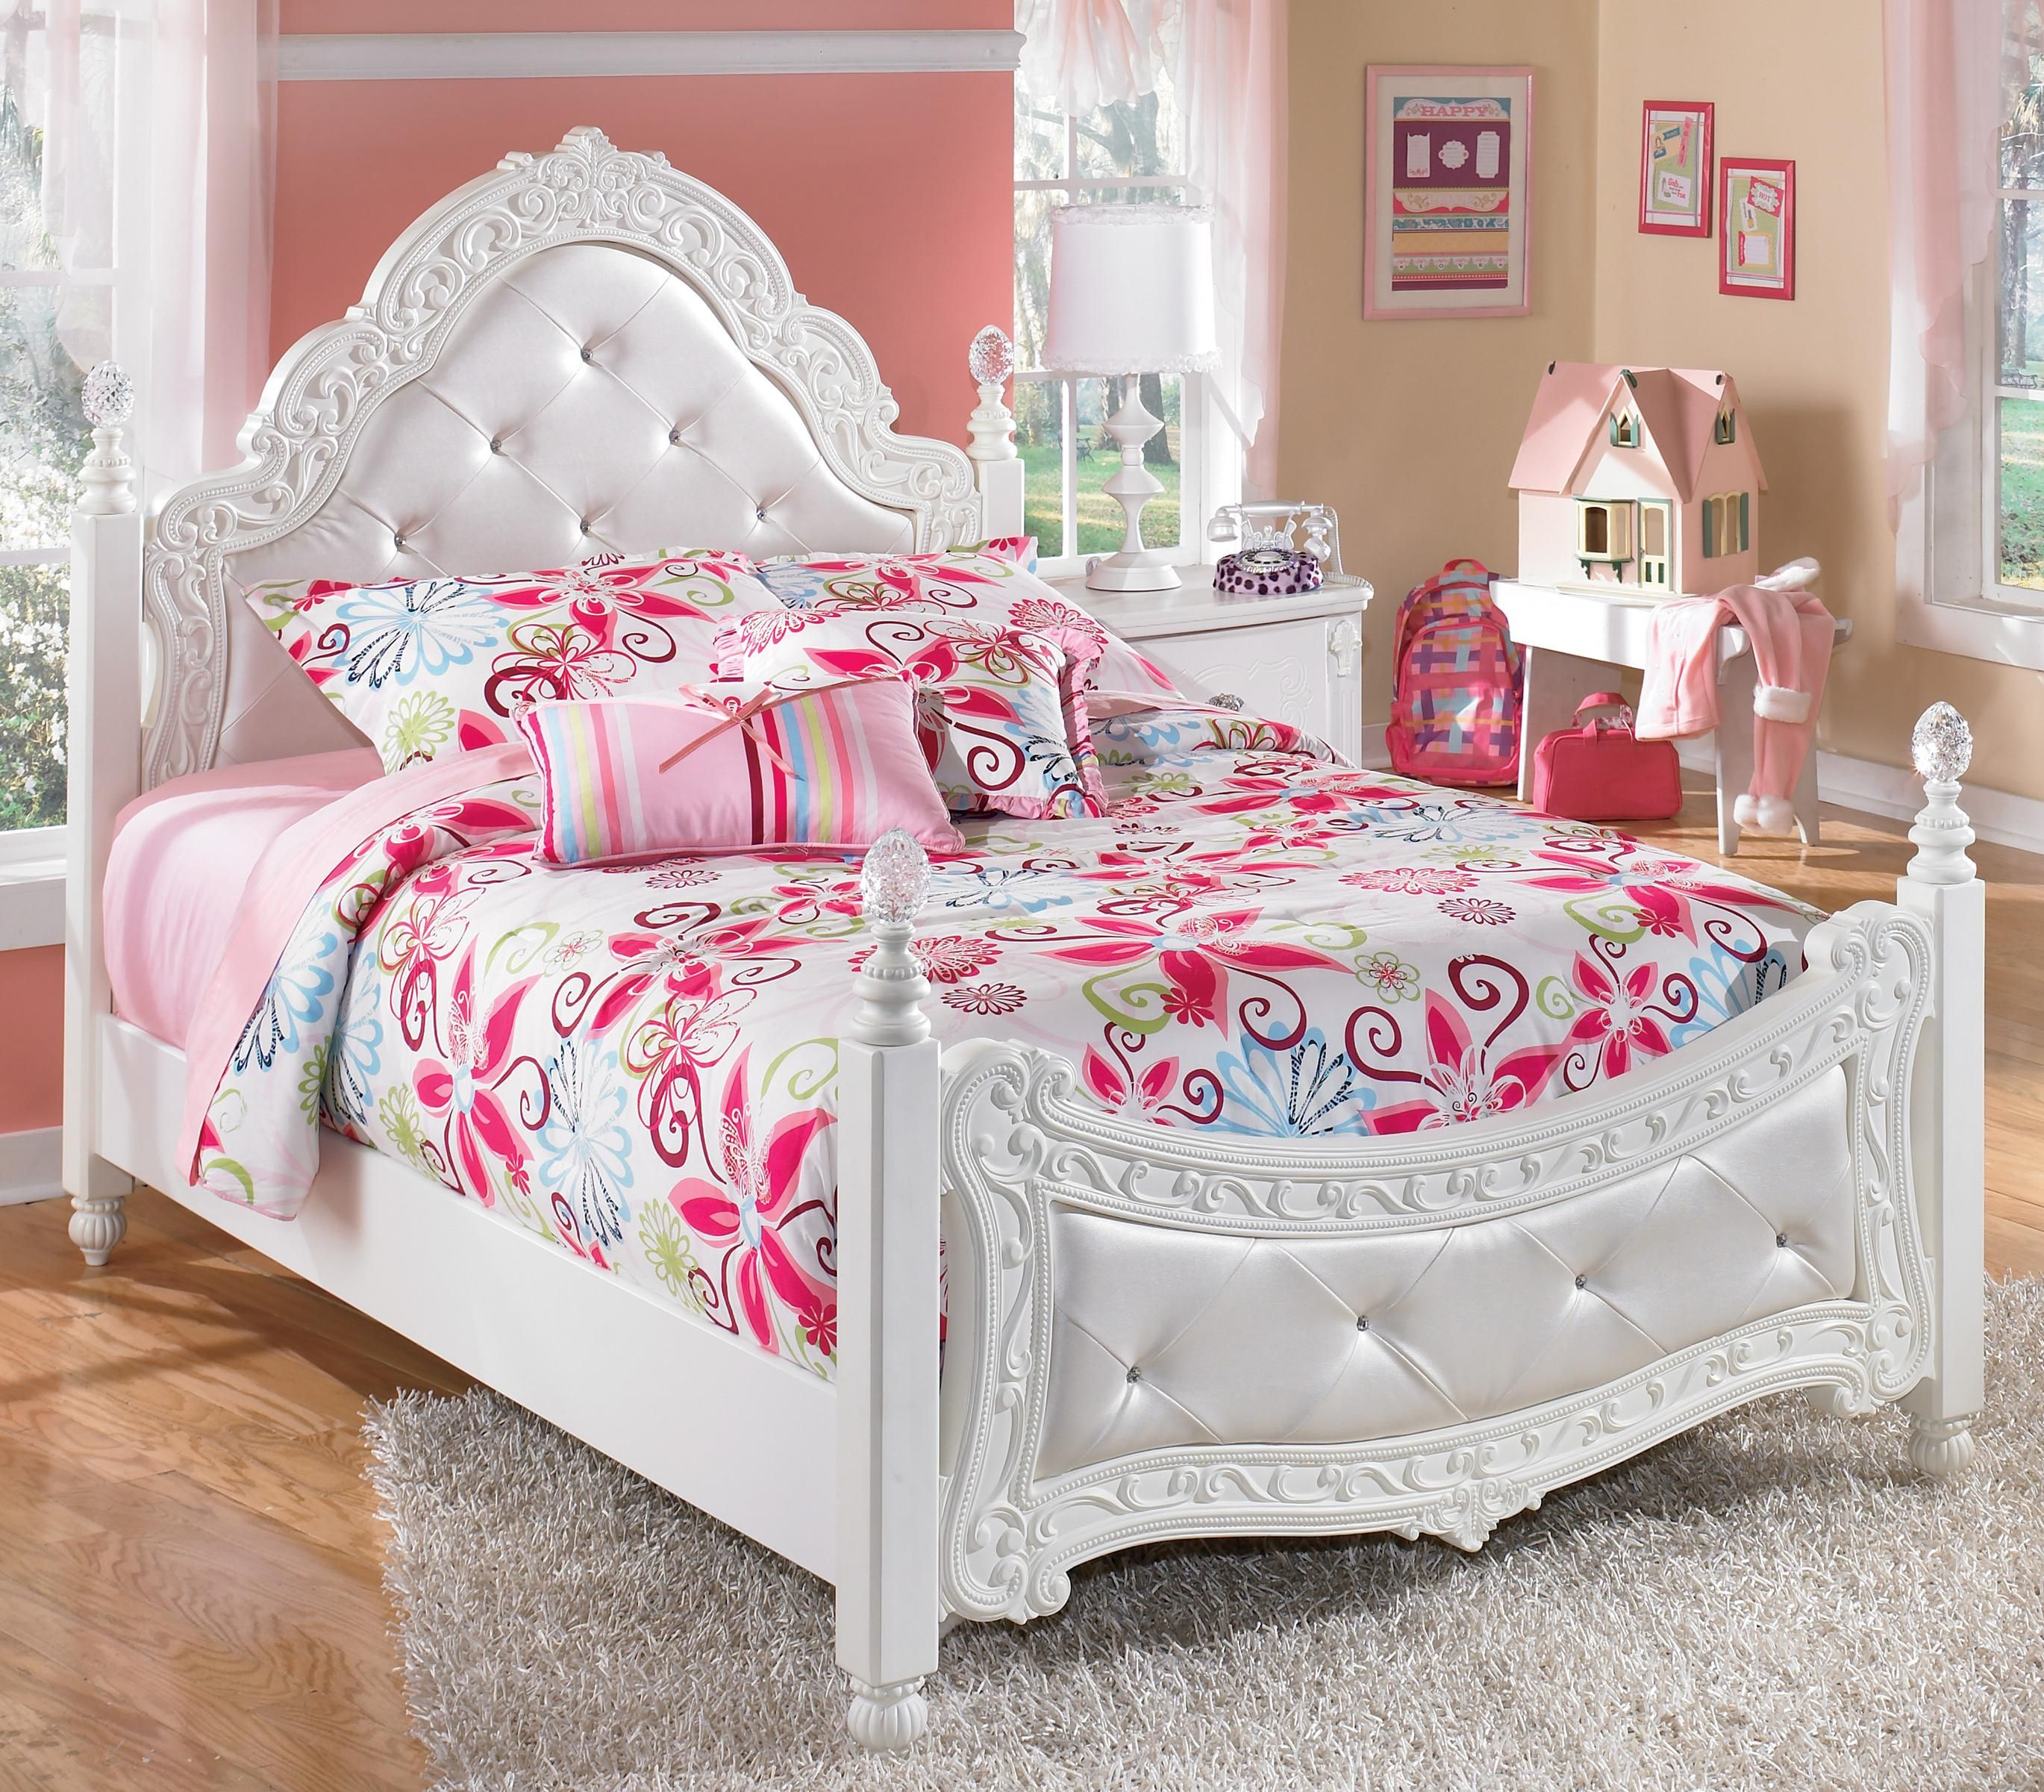 Incredible Home My Wishlist Bedroom Furniture Sets Childrens Interior Design Ideas Tzicisoteloinfo